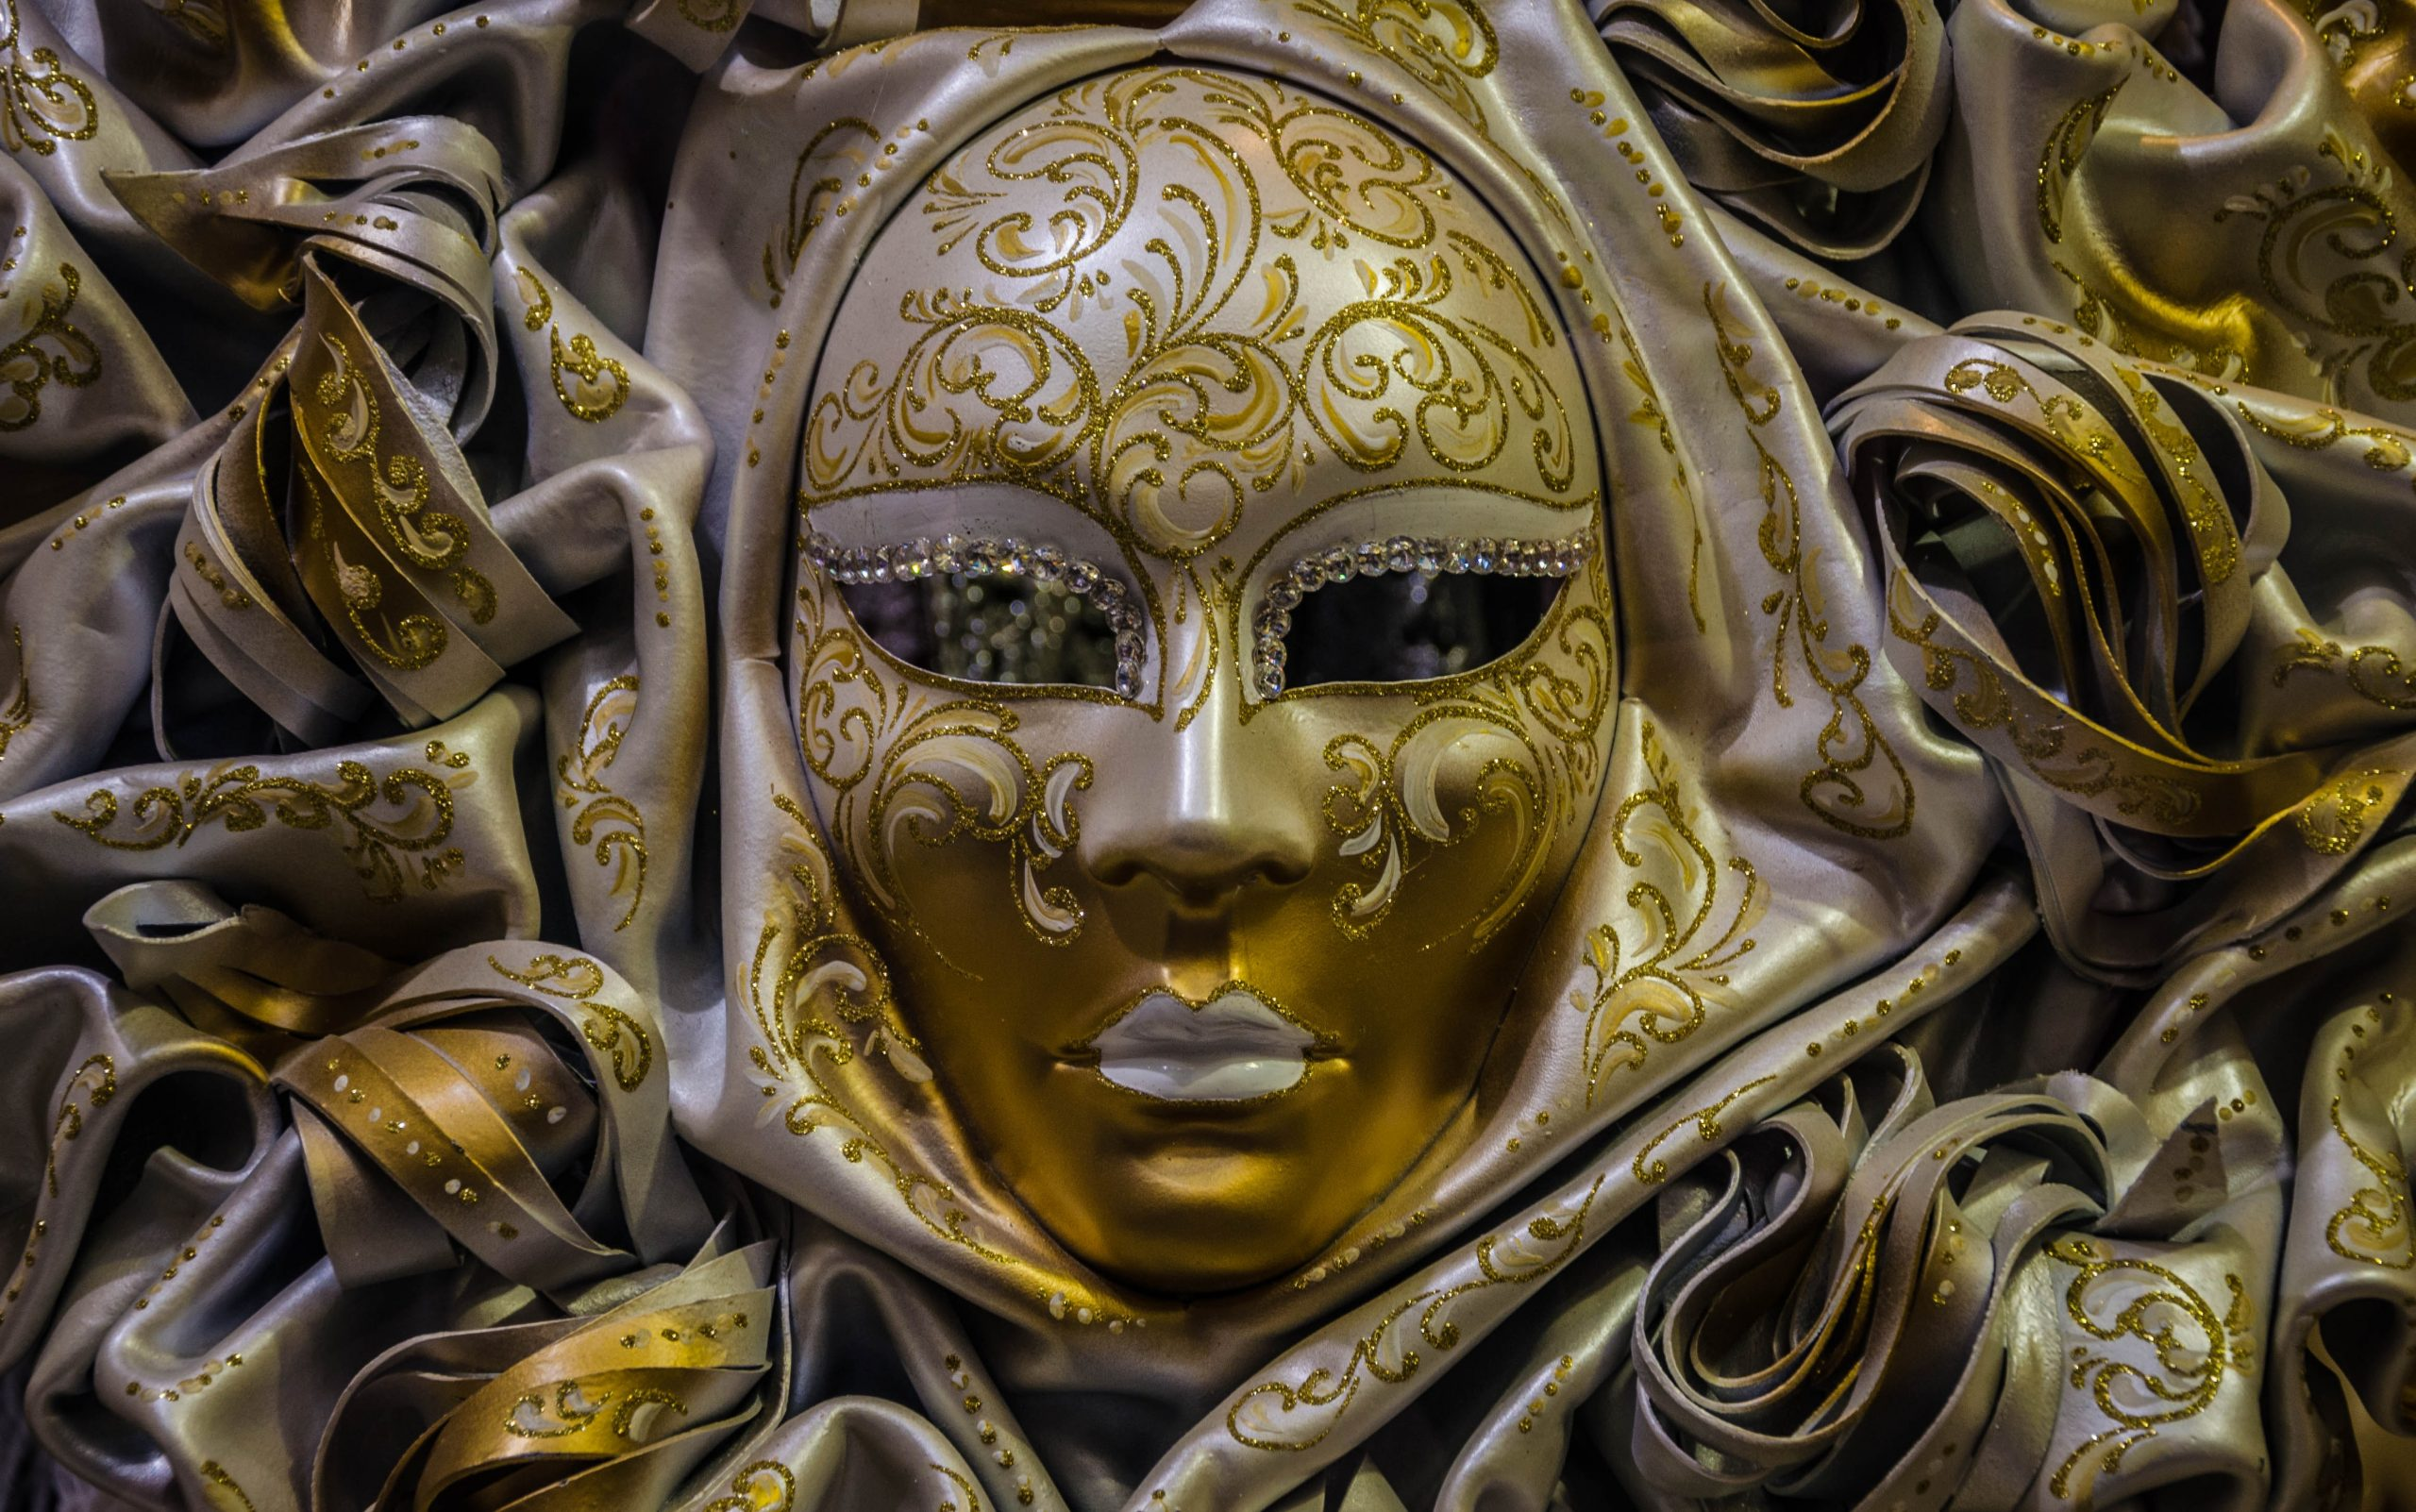 A Playful Twist On Safe Dining In Raleigh: Indulging The Mask, Or The Masque